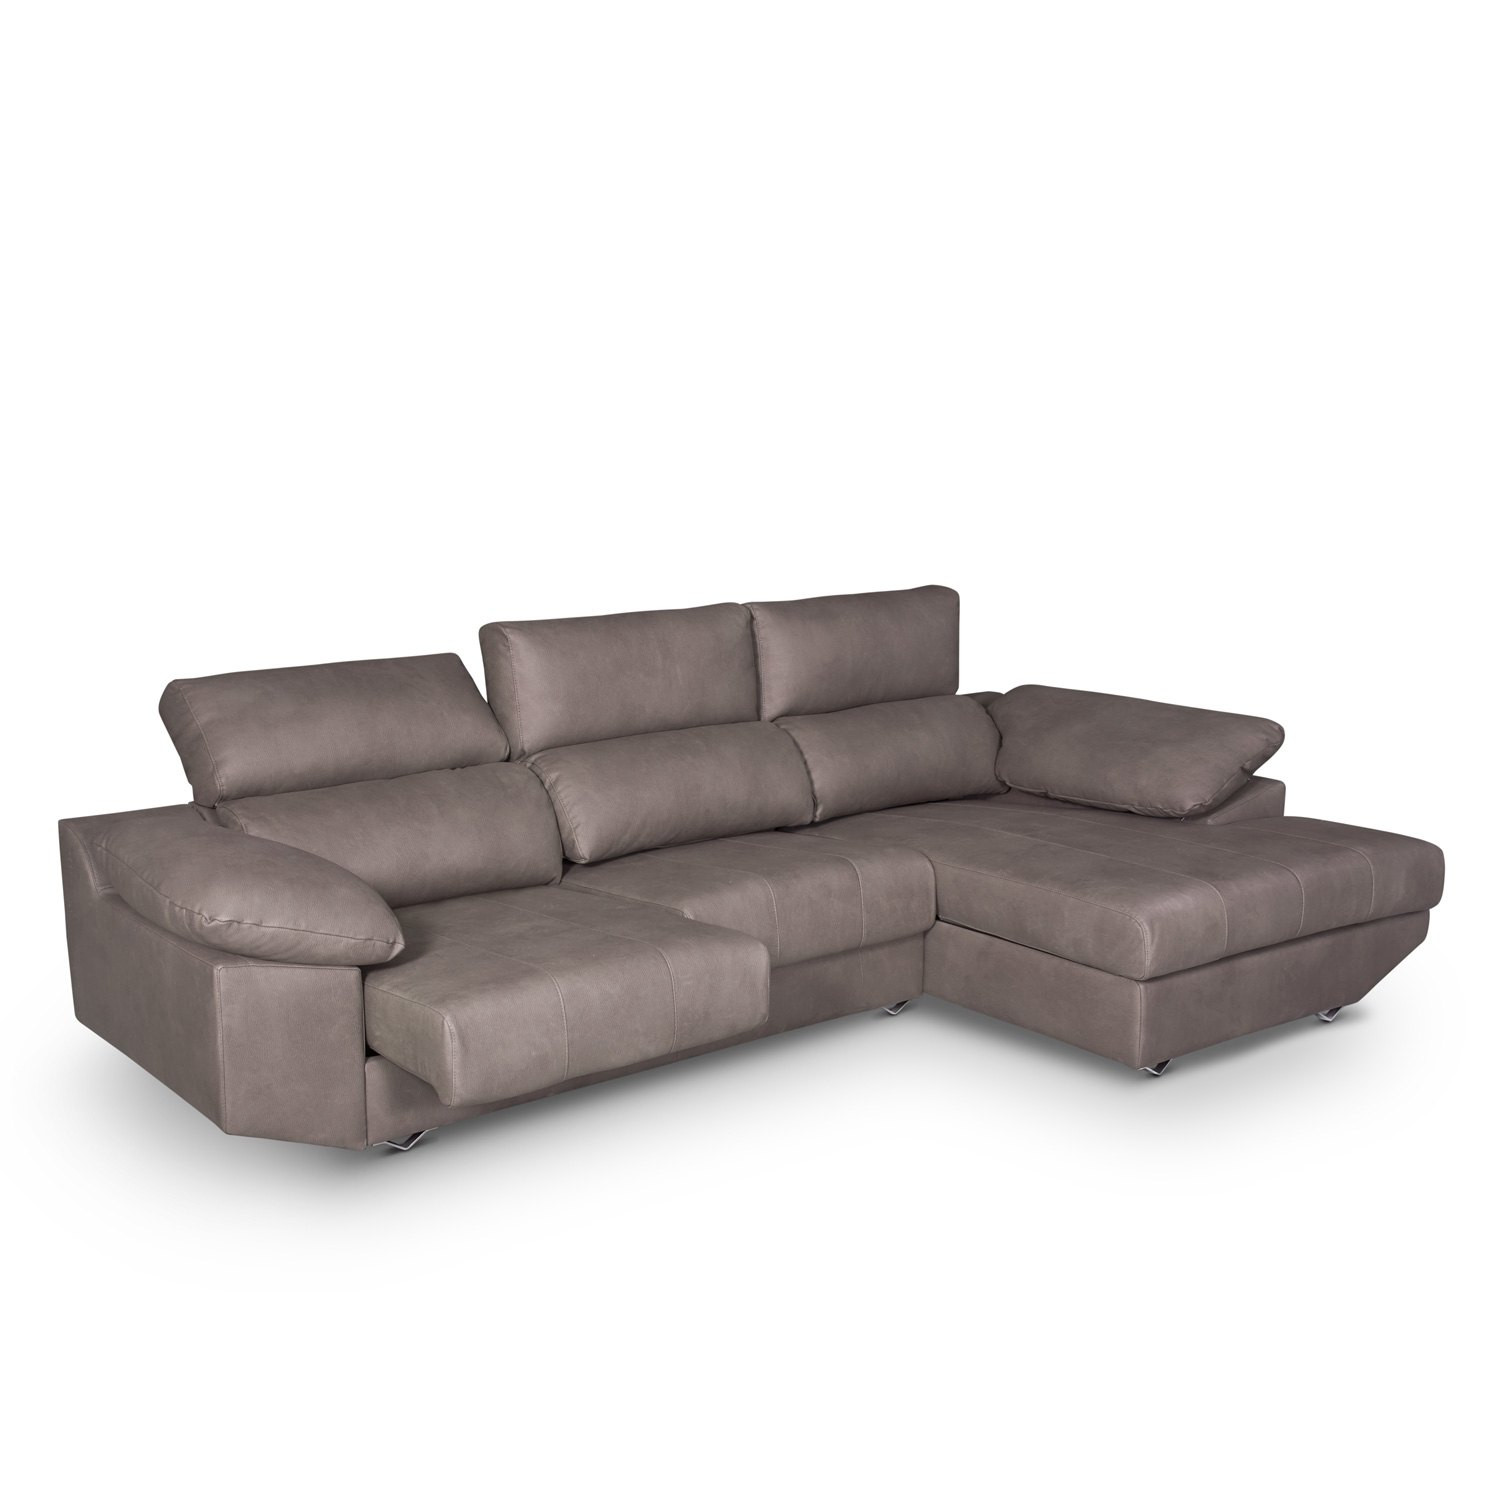 Oferta sofa Chaise Longue atractivo sofa Con Chaise Longue Con Arcón Cómodo En Tres Colores Of 41  Encantador Oferta sofa Chaise Longue